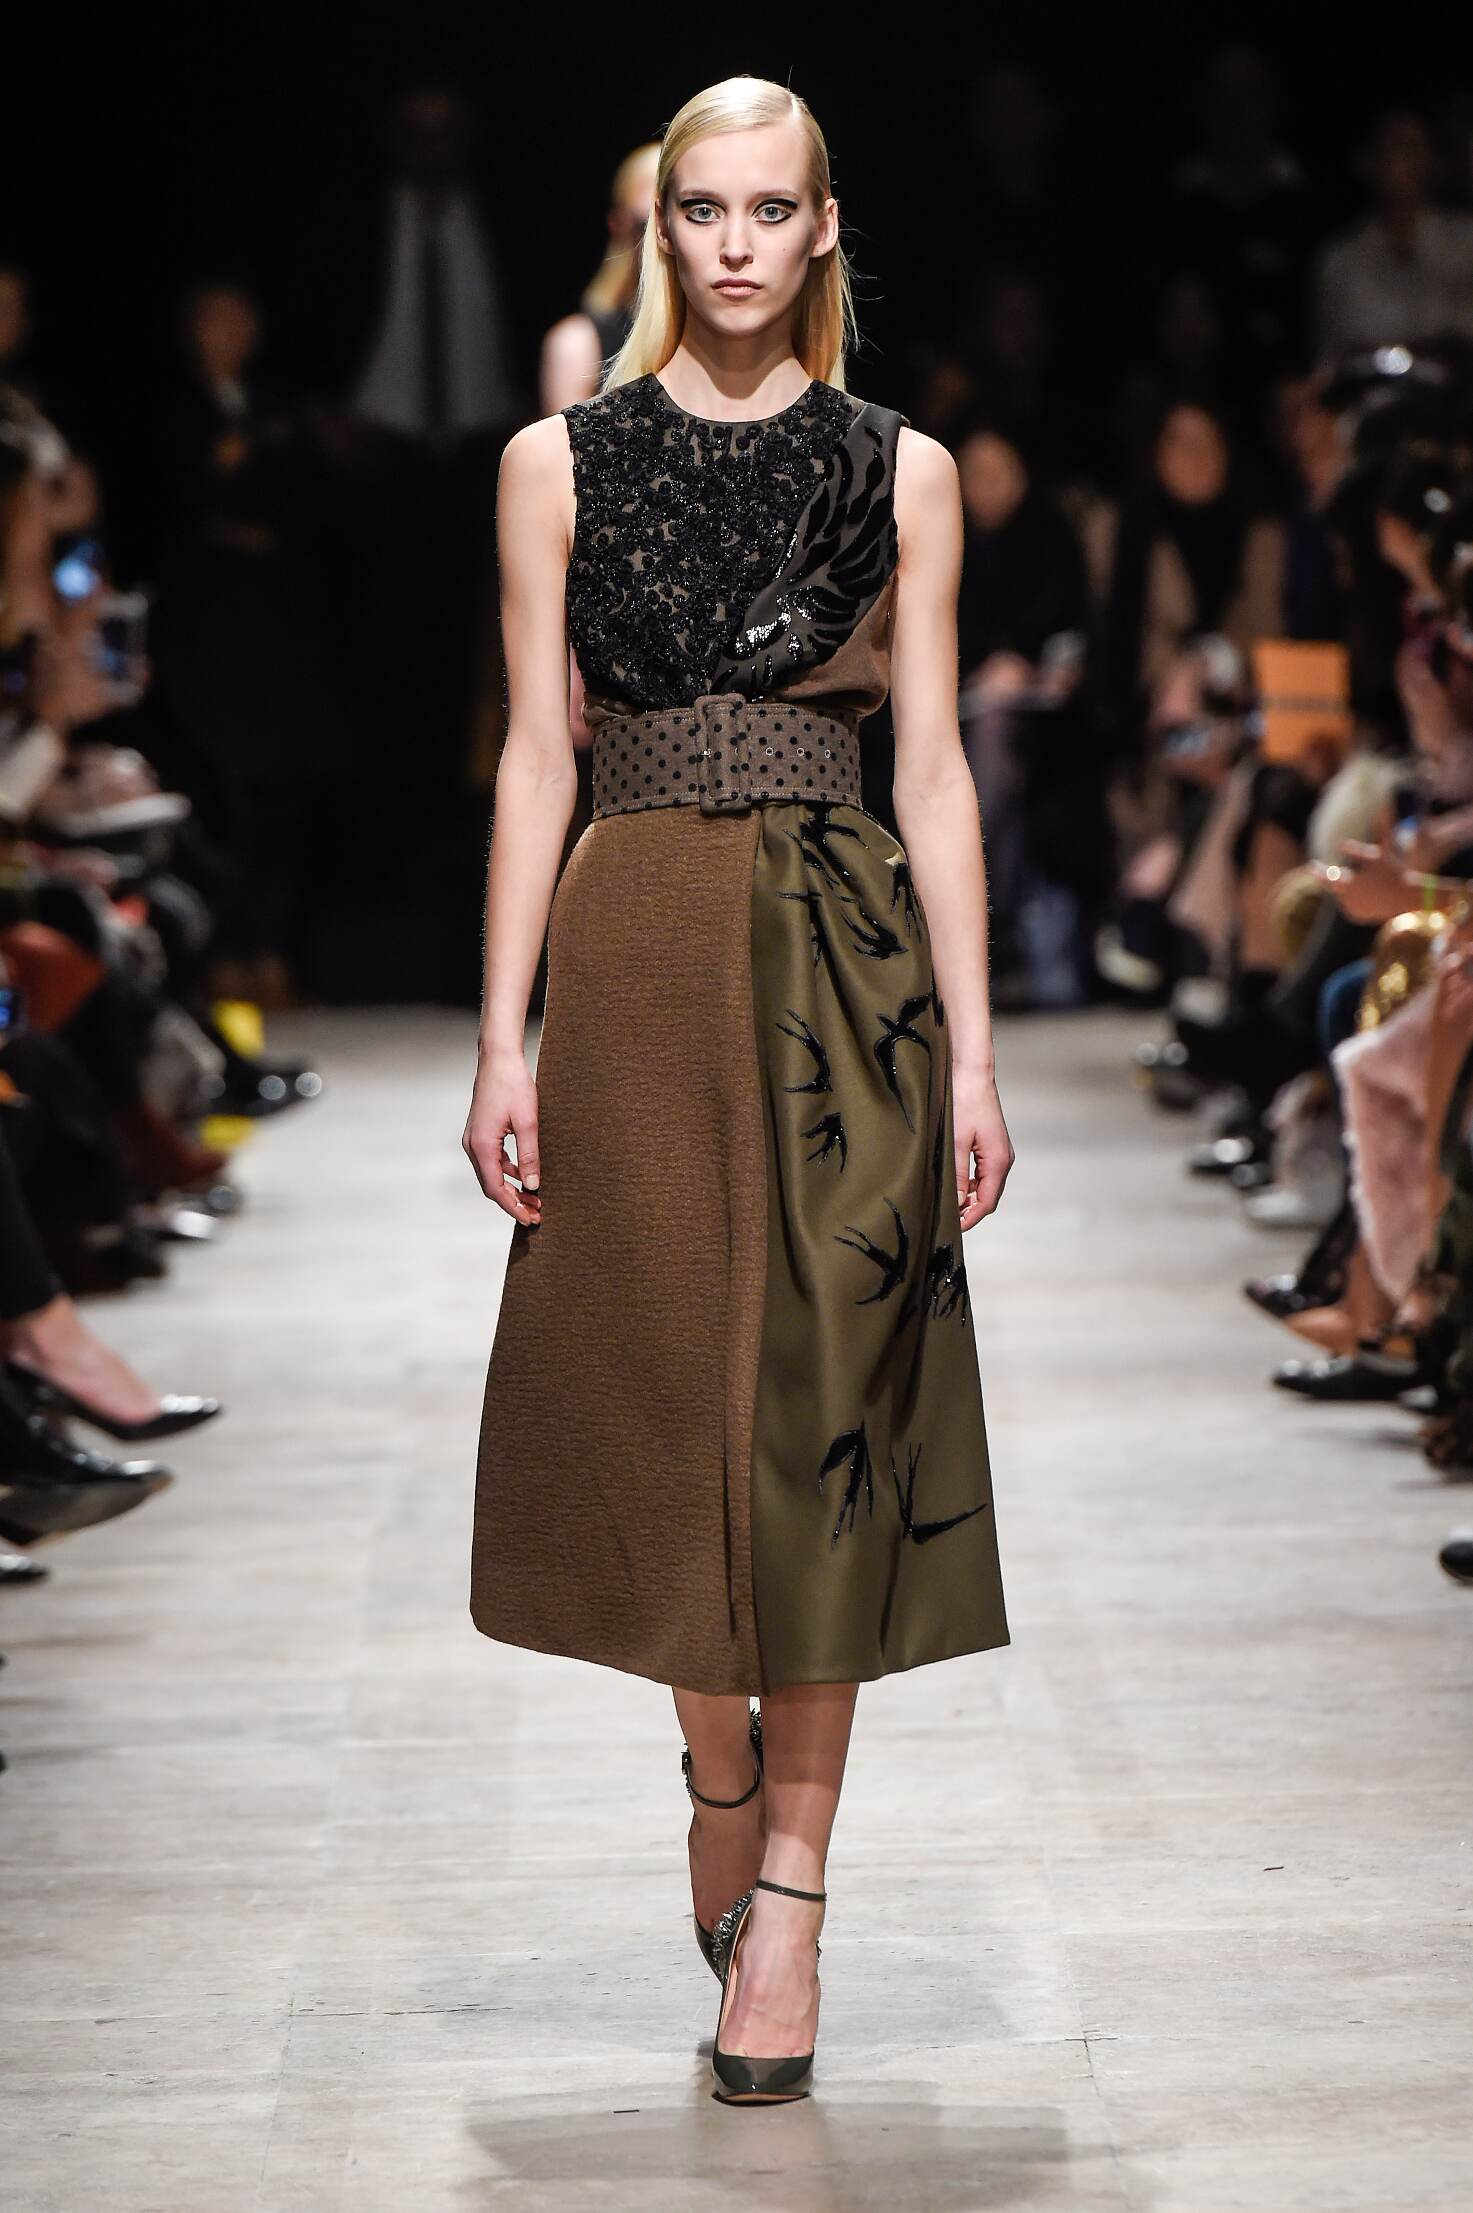 2015 Fashion Woman Model Rochas Collection Catwalk